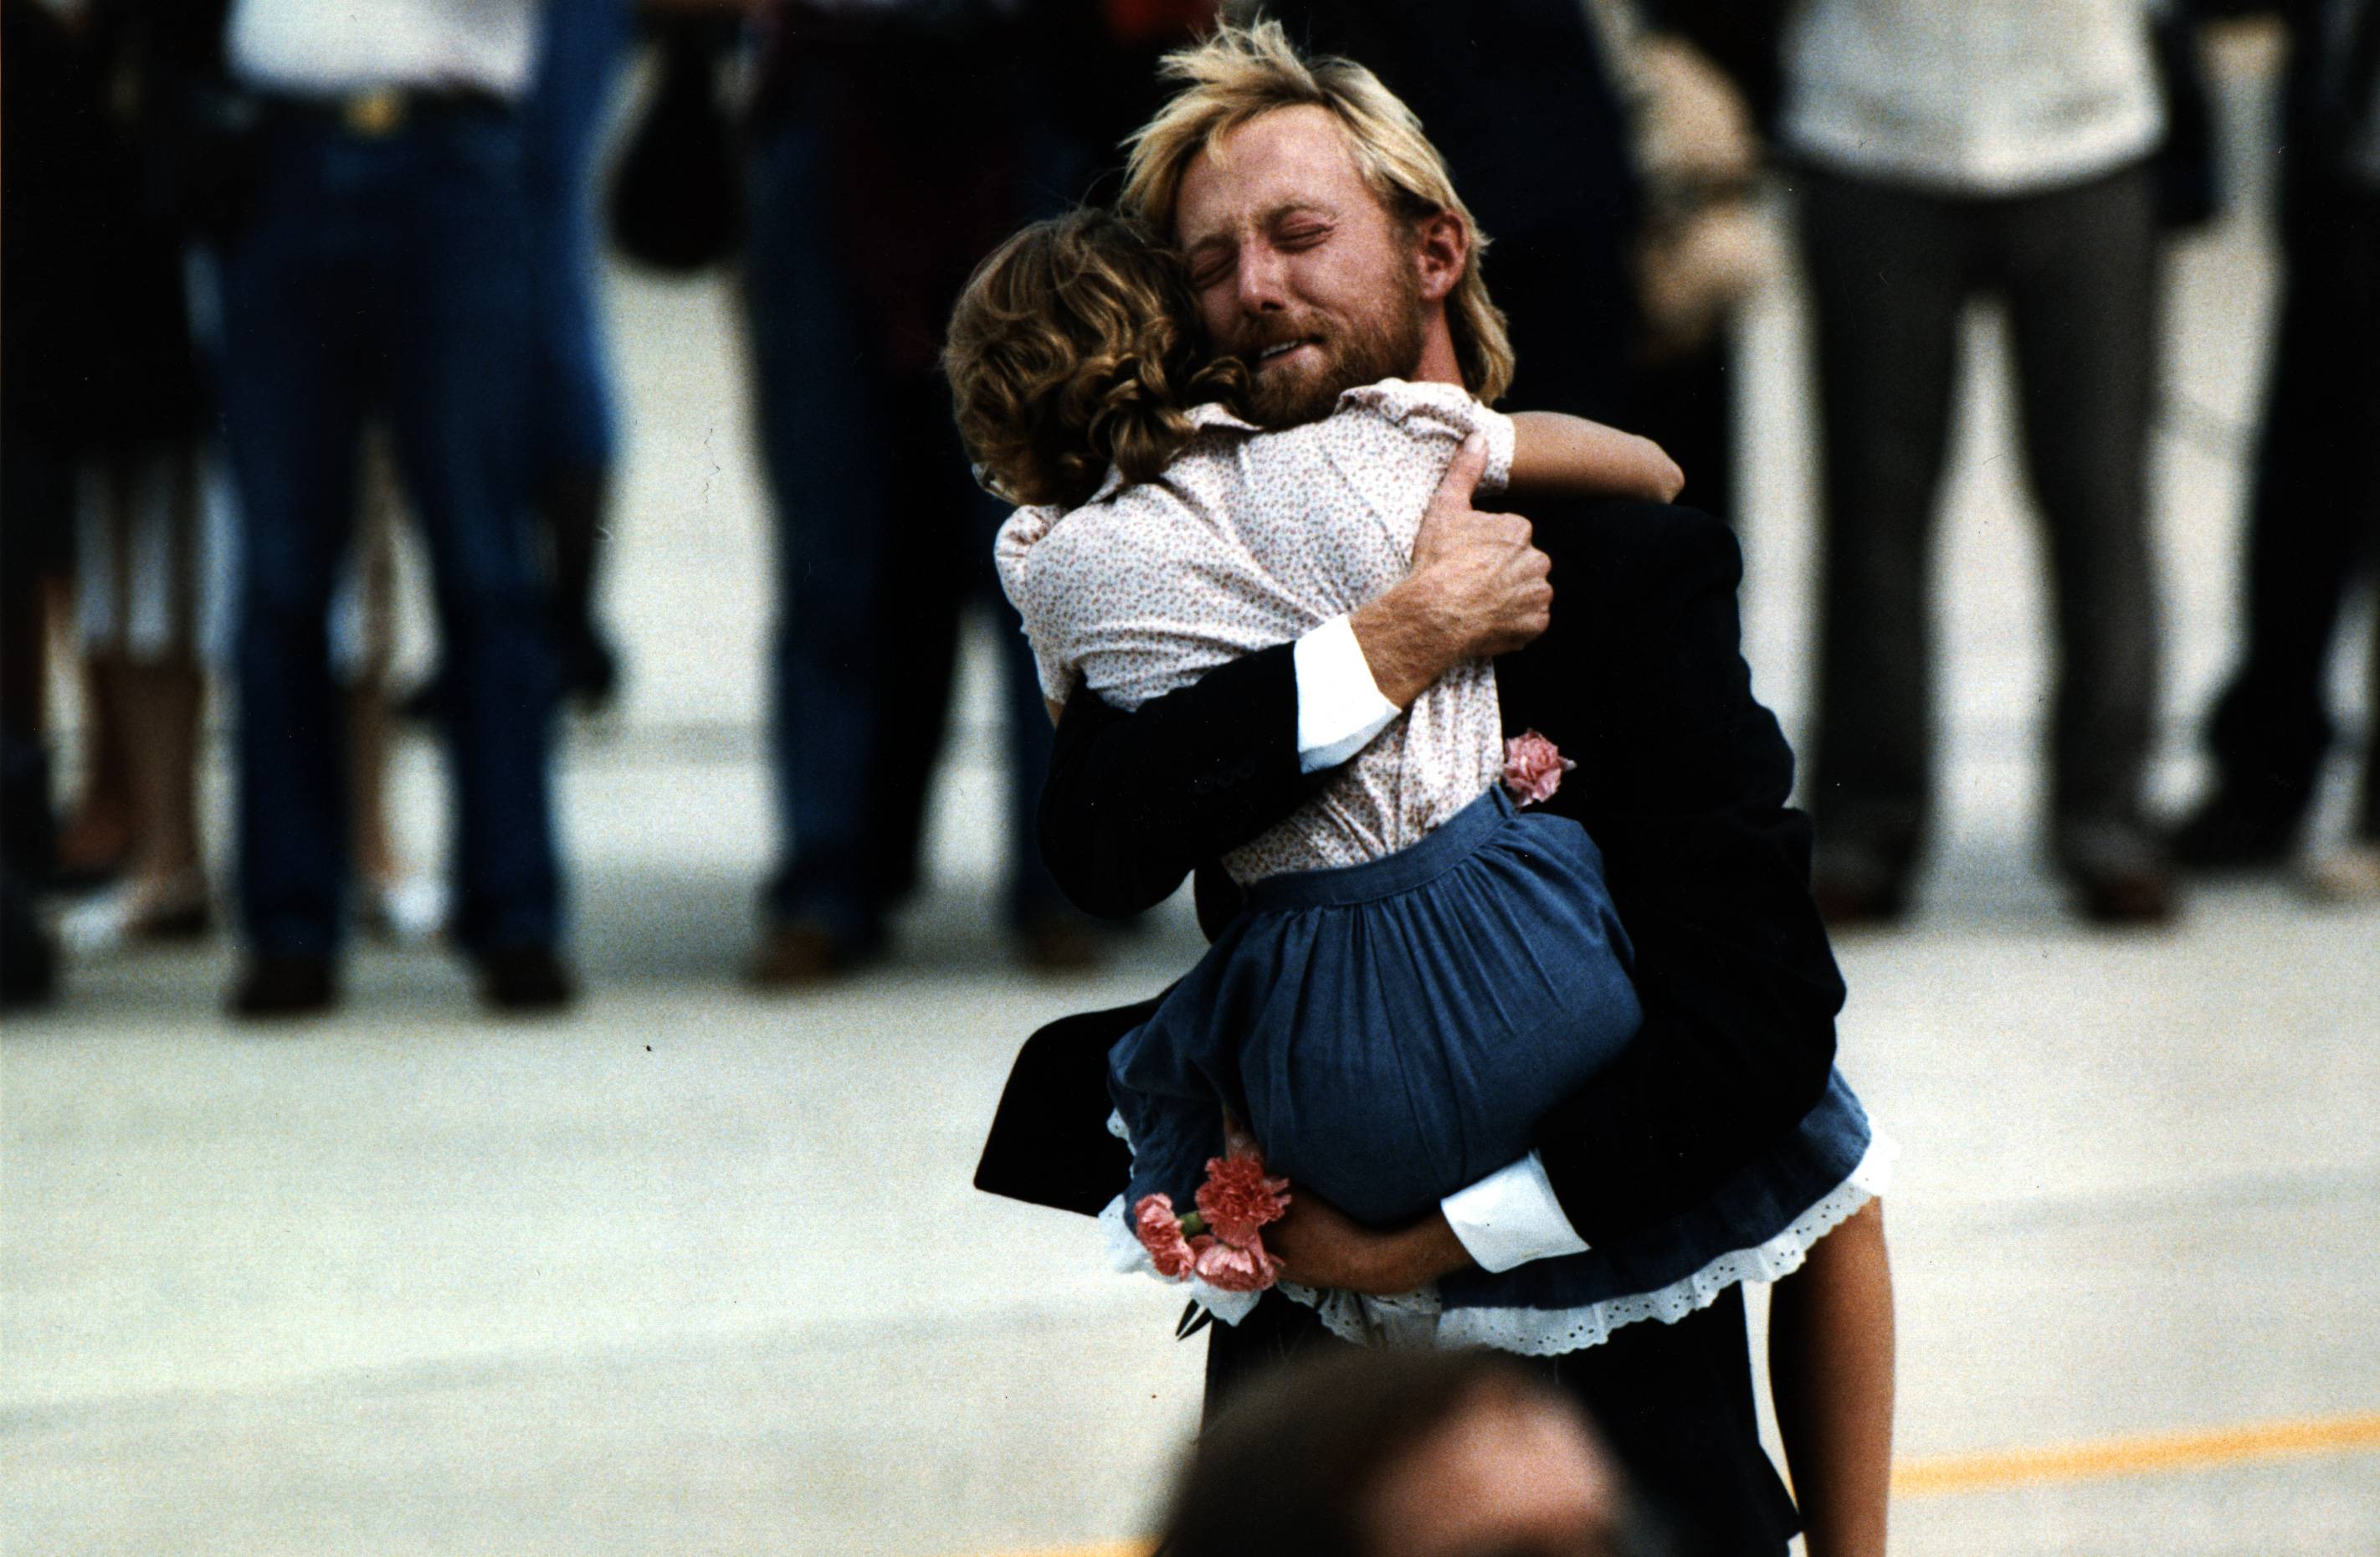 While holding carnations he carried off the plane, former TWA flight 847 hostage Victor Amburgy hugs an unidentified girl after his arrival at Andrews Air Force Base. Thirty former hostages from the flight were greeted on American soil by President Ronald Reagan and first lady Nancy Reagan.